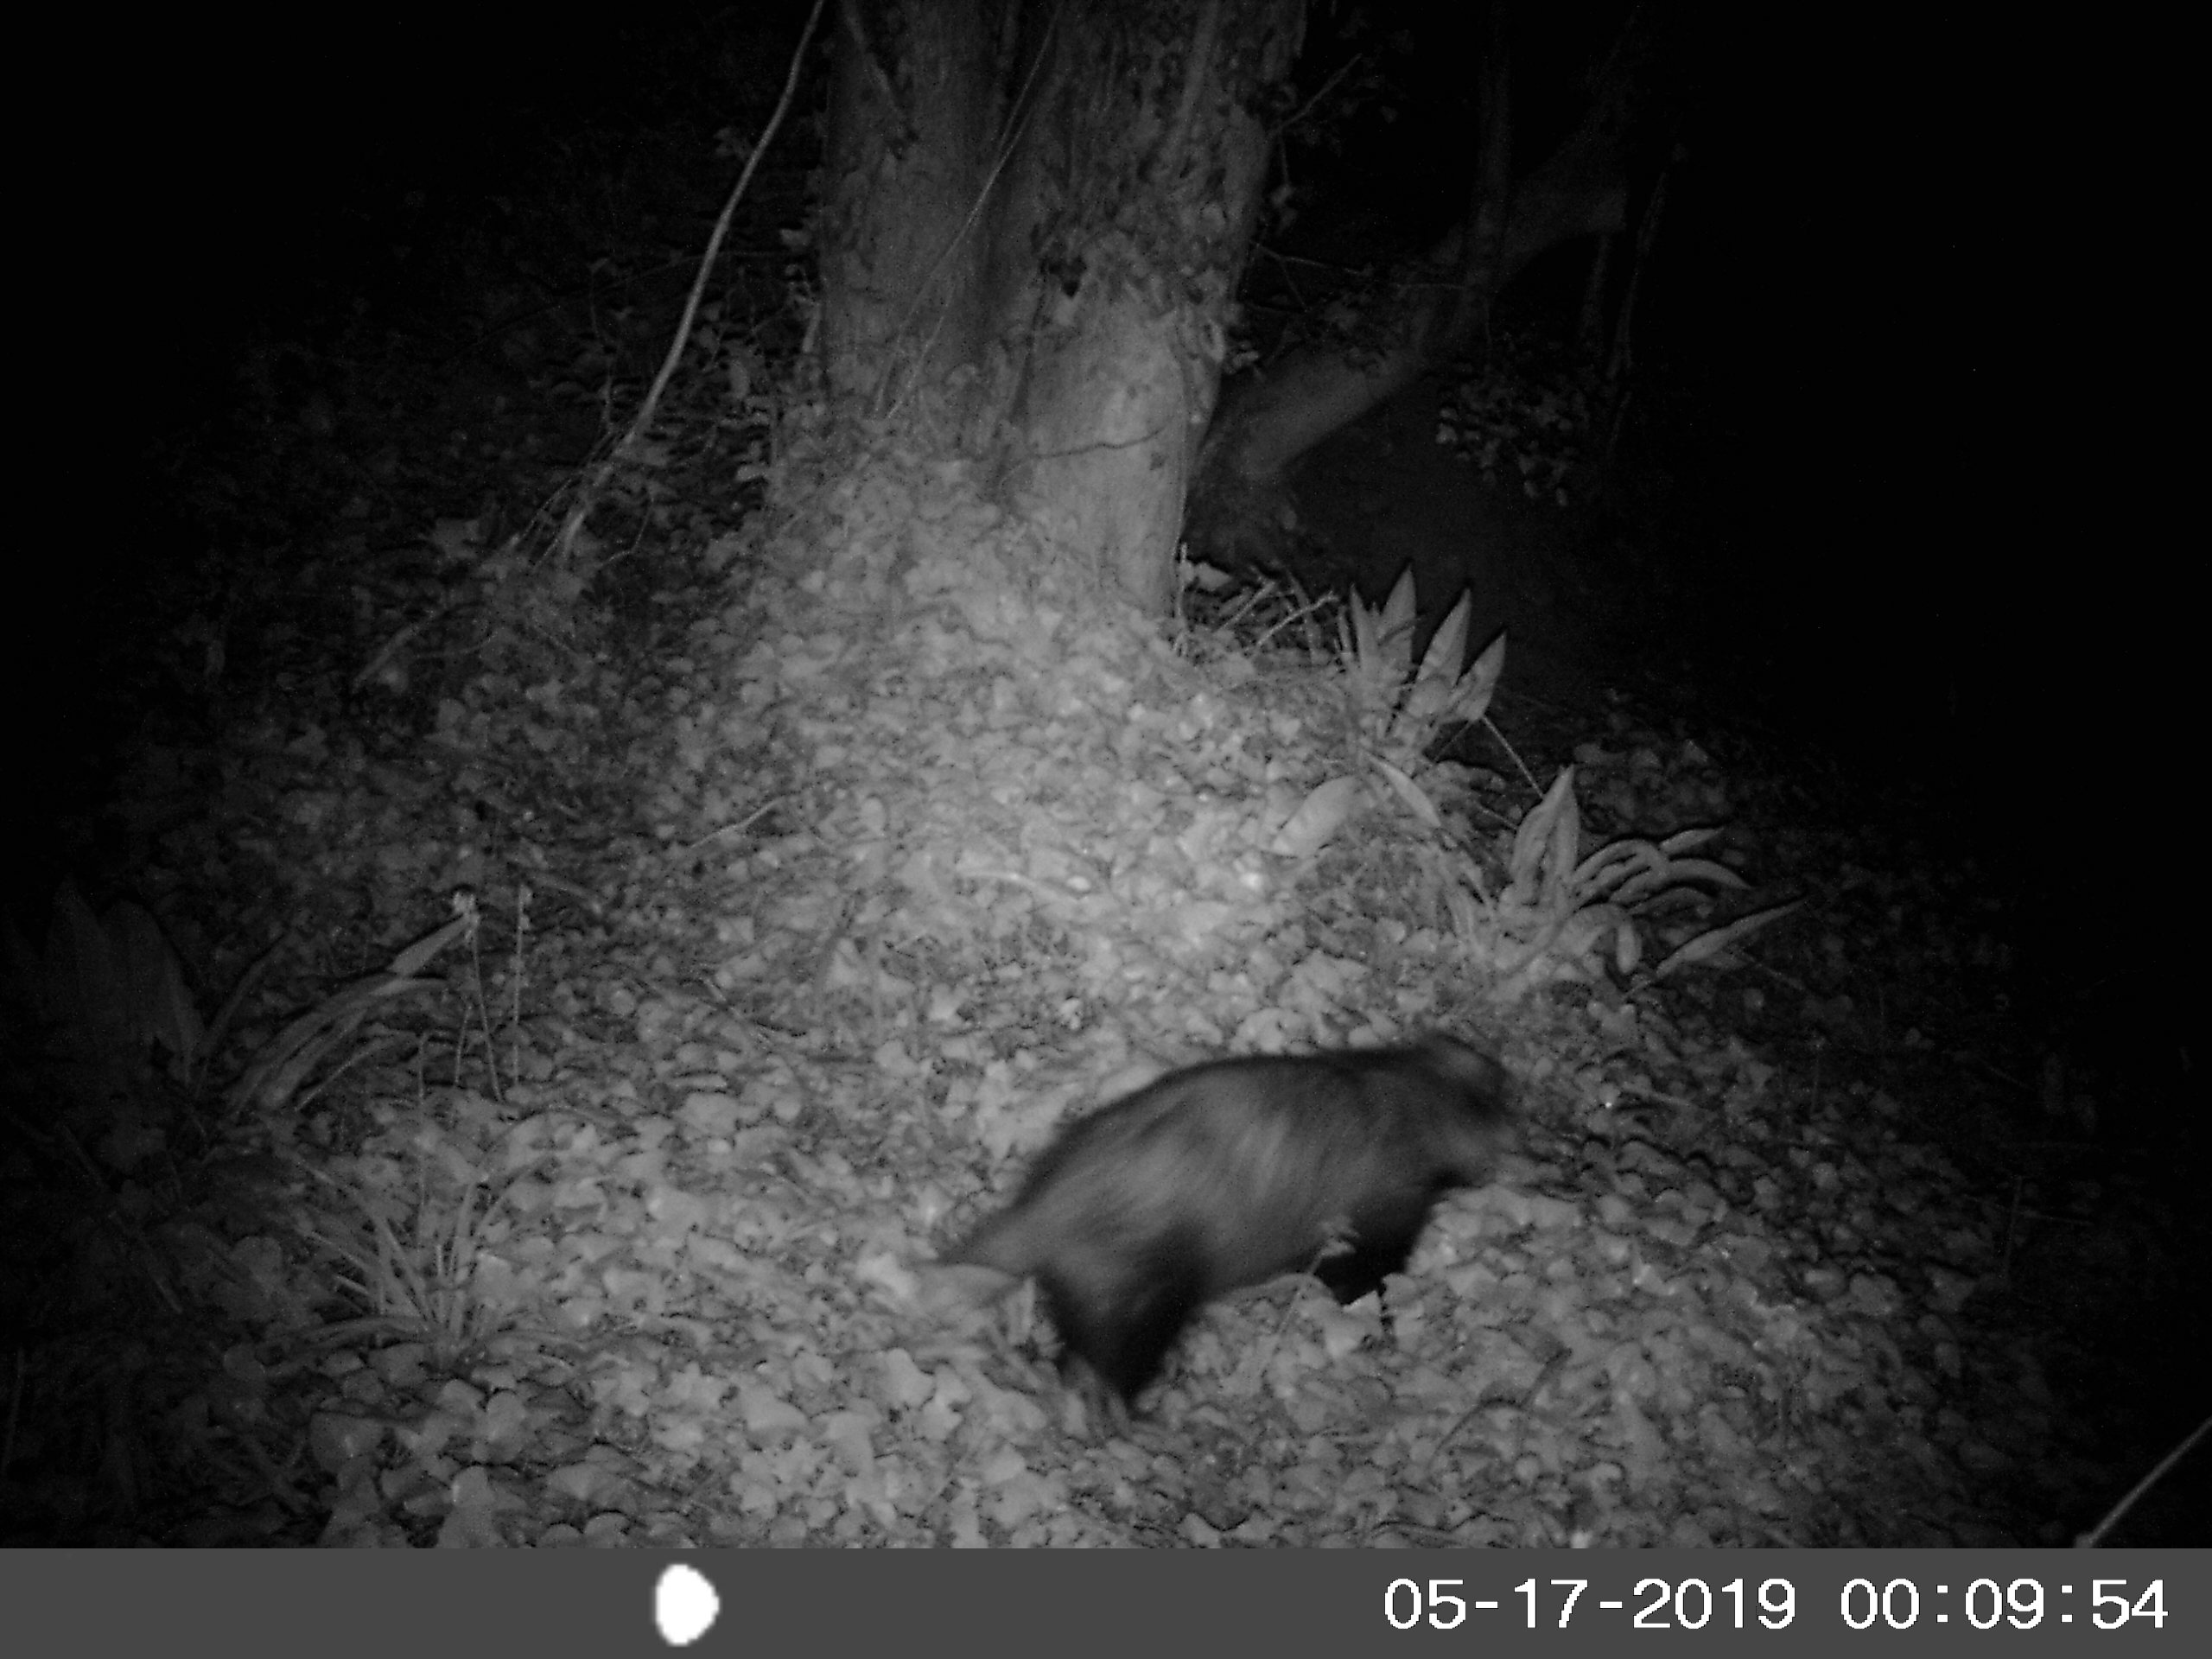 A badger, photographed by IR camera just after midnight